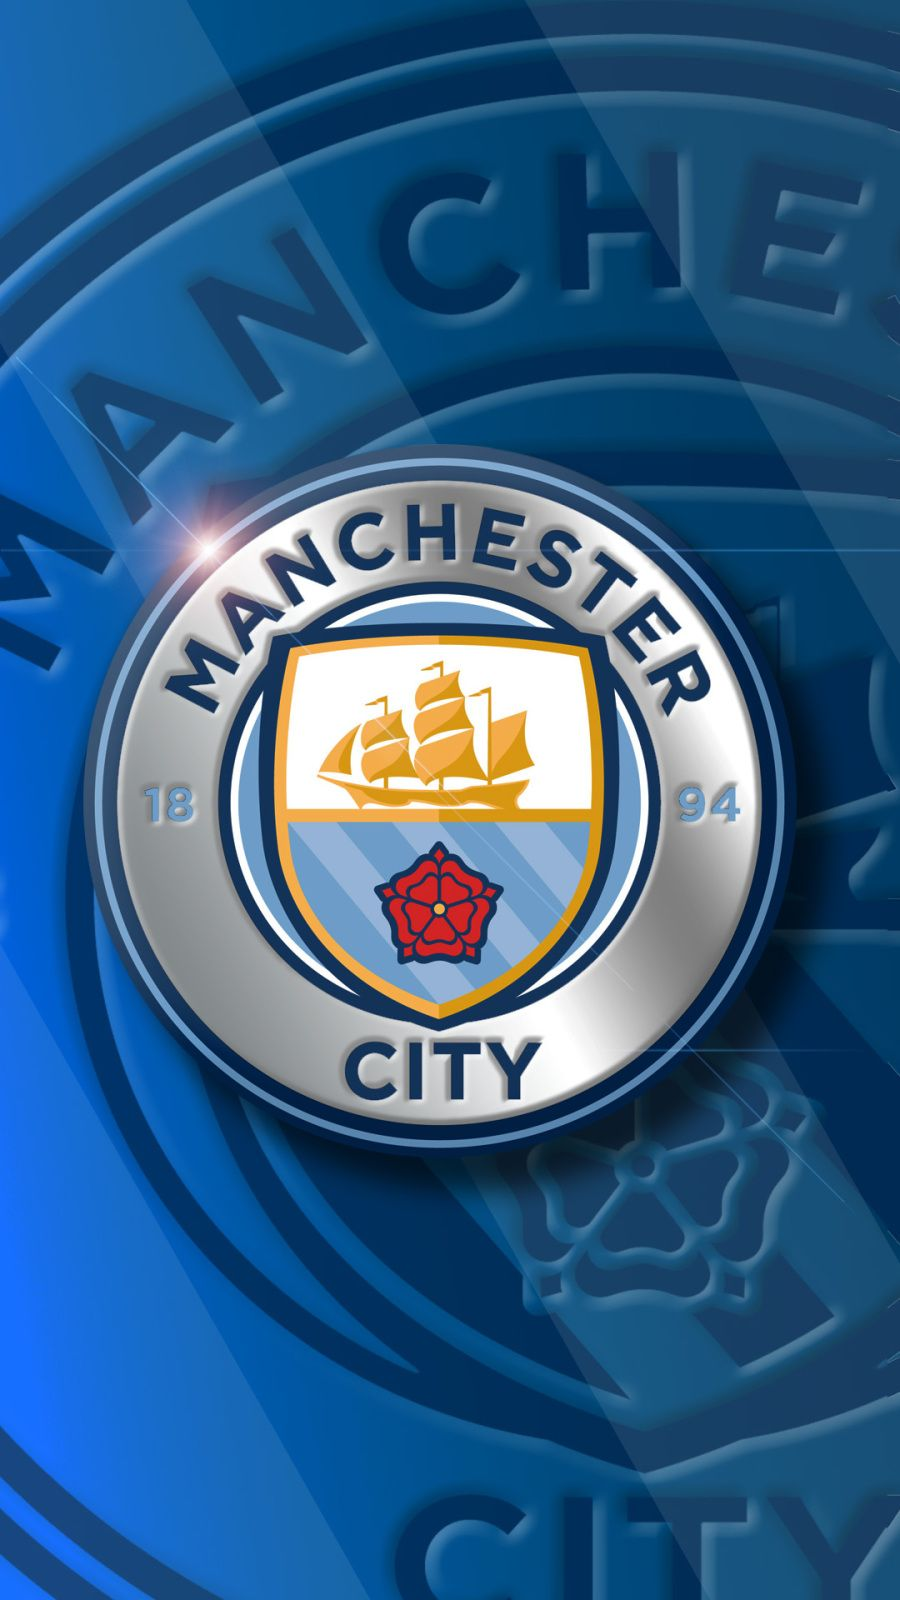 Pin By Enzo On Tecnologia Manchester City Wallpaper Manchester City Manchester City Logo